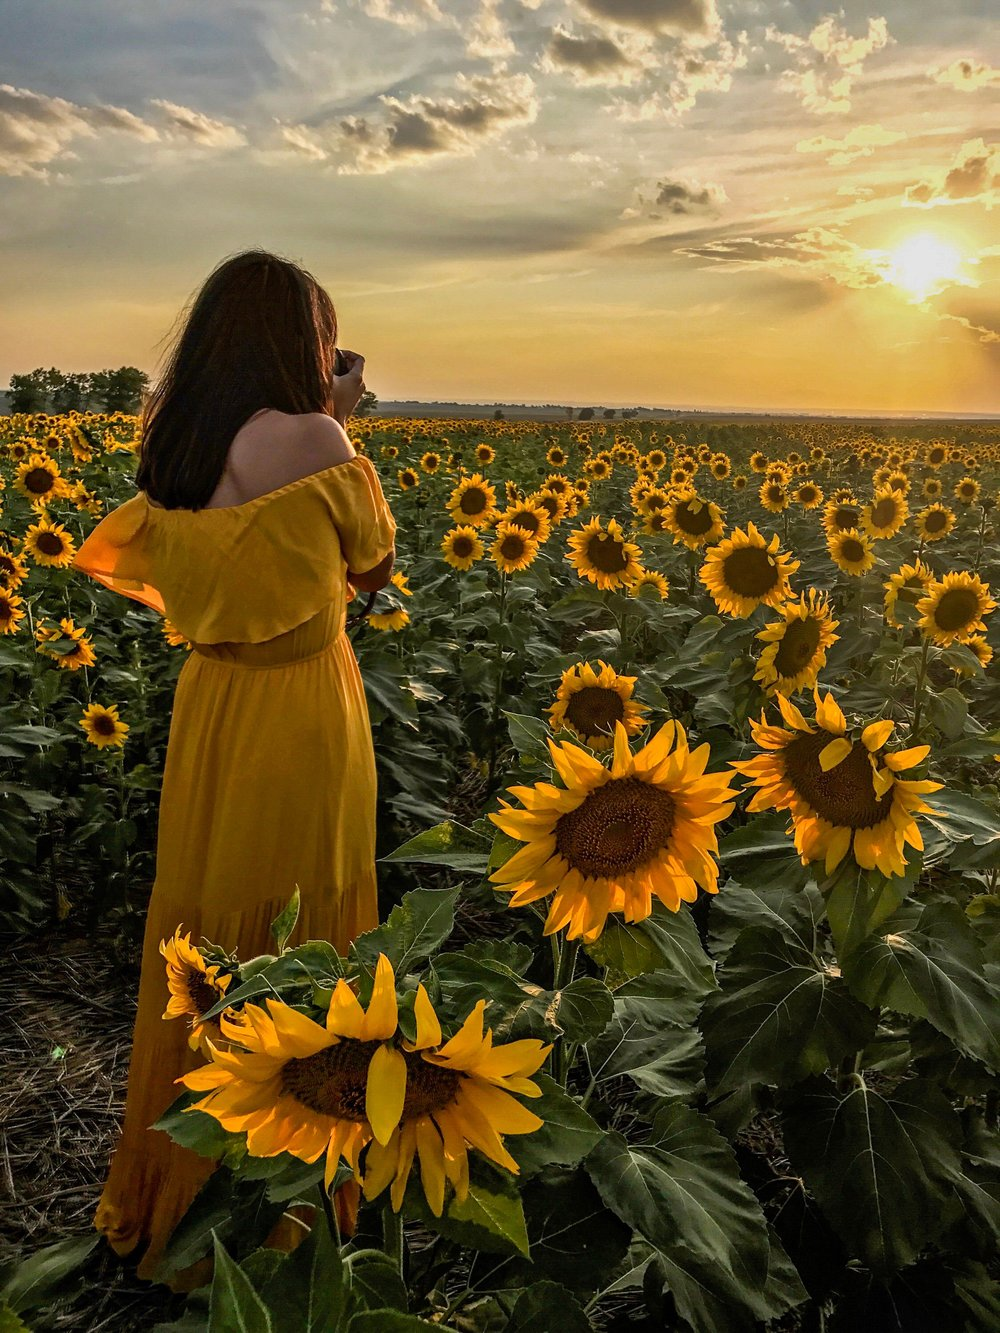 Taking photos in sunflower heaven.